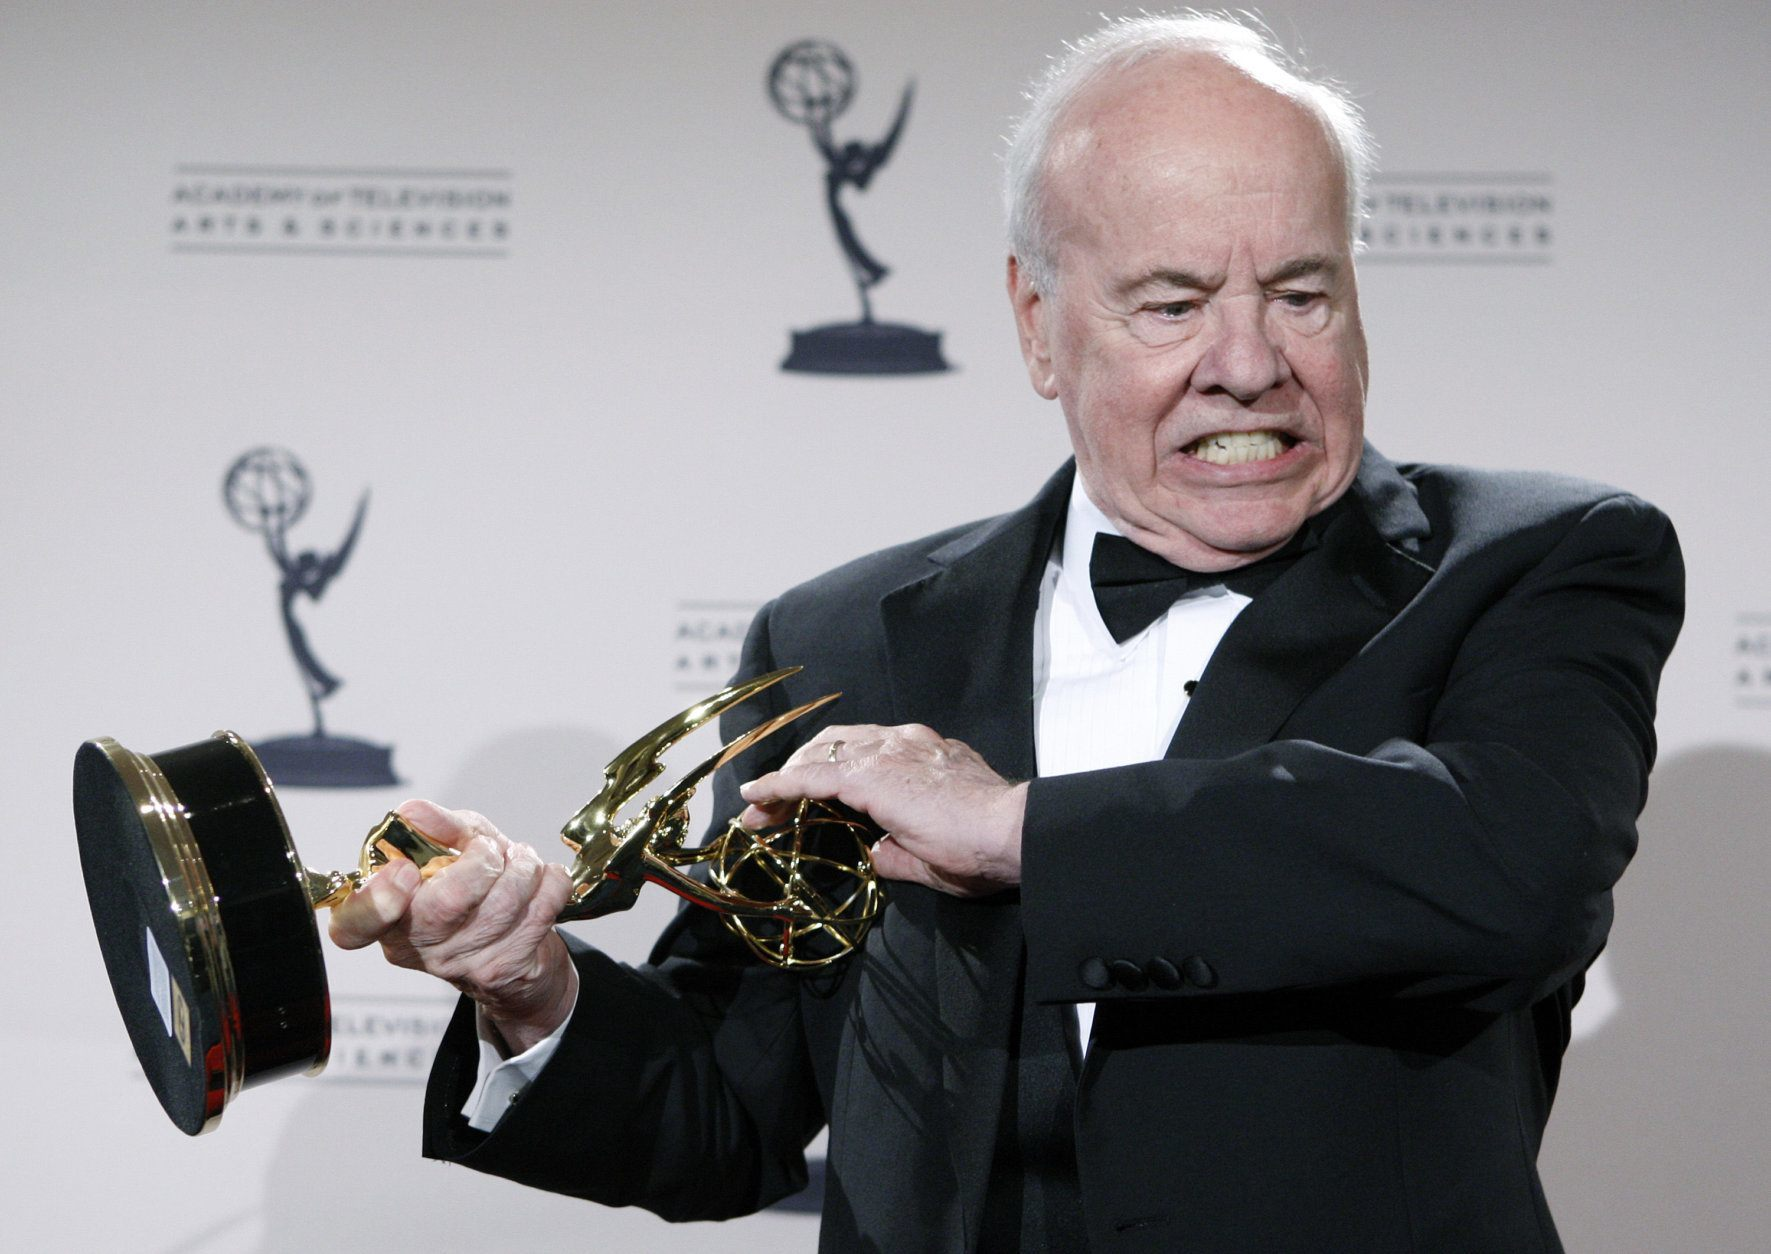 """Actor Tim Conway poses with his award for Outstanding Guest Actor in a Comedy Series for his work on """"30 Rock"""" in the press room at the Creative Arts Emmy Awards in Los Angeles on Saturday, Sept. 13, 2008.  (AP Photo/Matt Sayles)"""